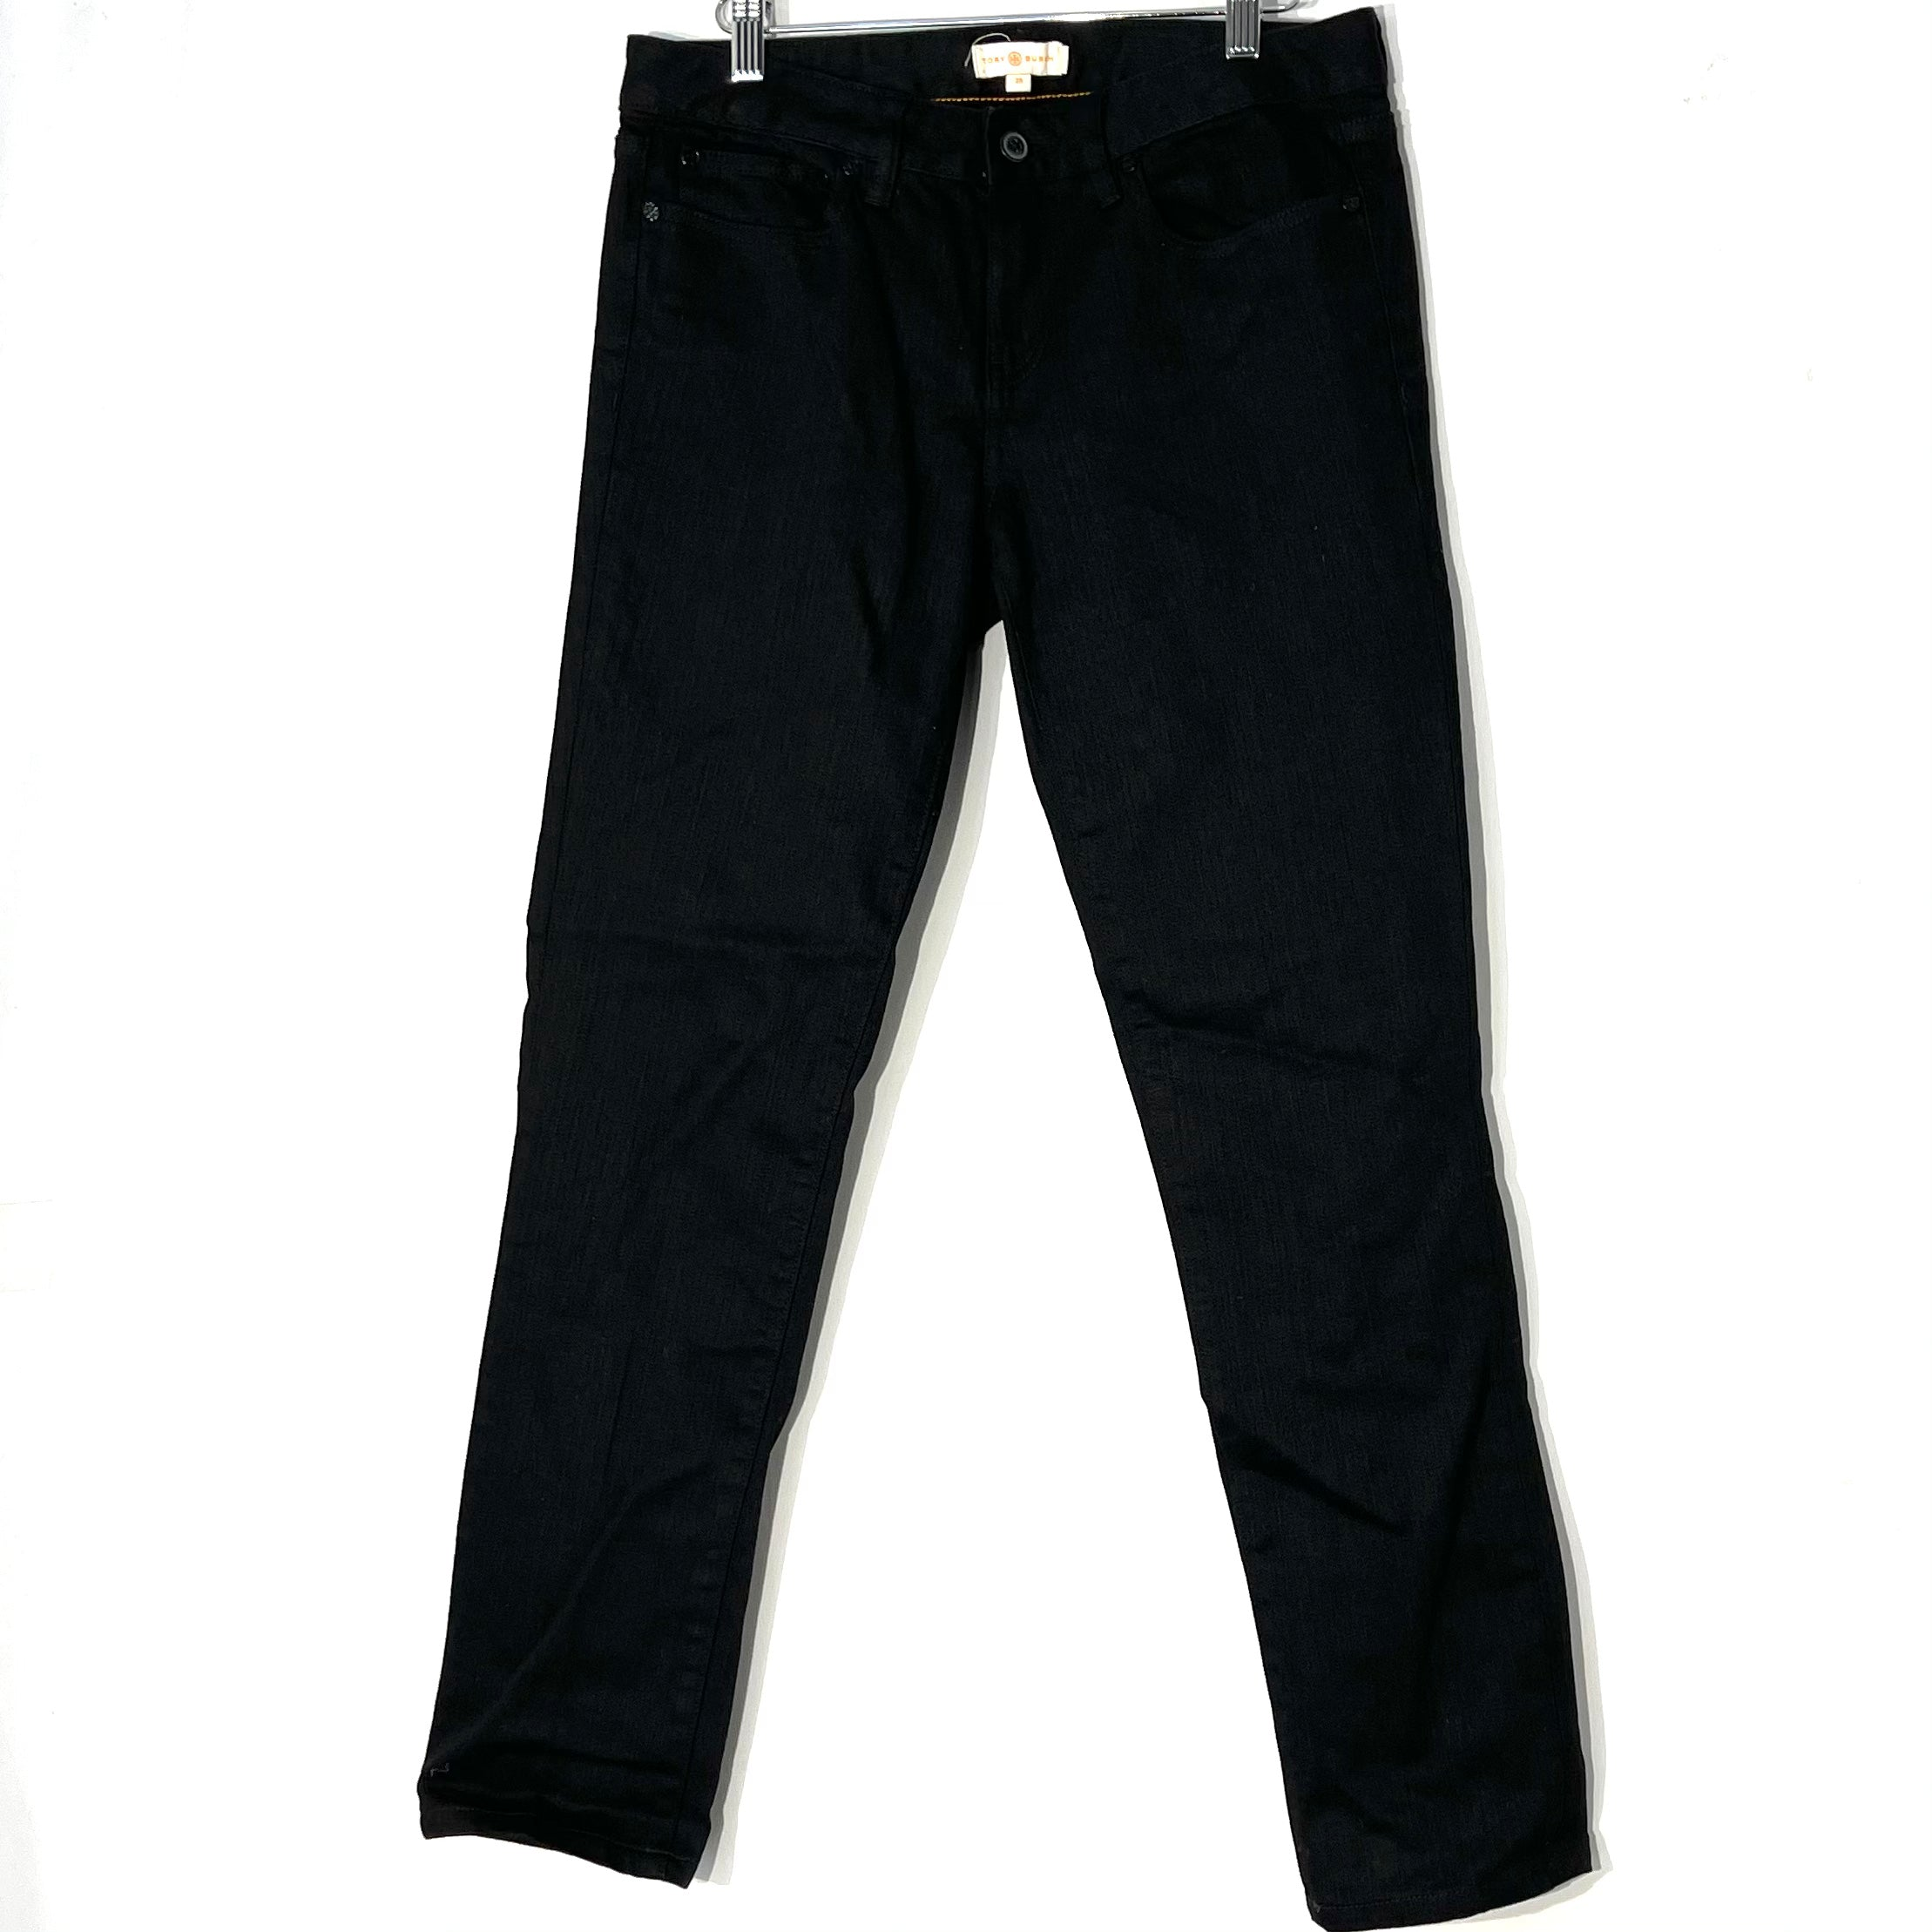 Primary Photo - BRAND: TORY BURCH <BR>STYLE: JEANS <BR>COLOR: BLACK DENIM <BR>SIZE: 8 /29<BR>SKU: 262-26241-46907